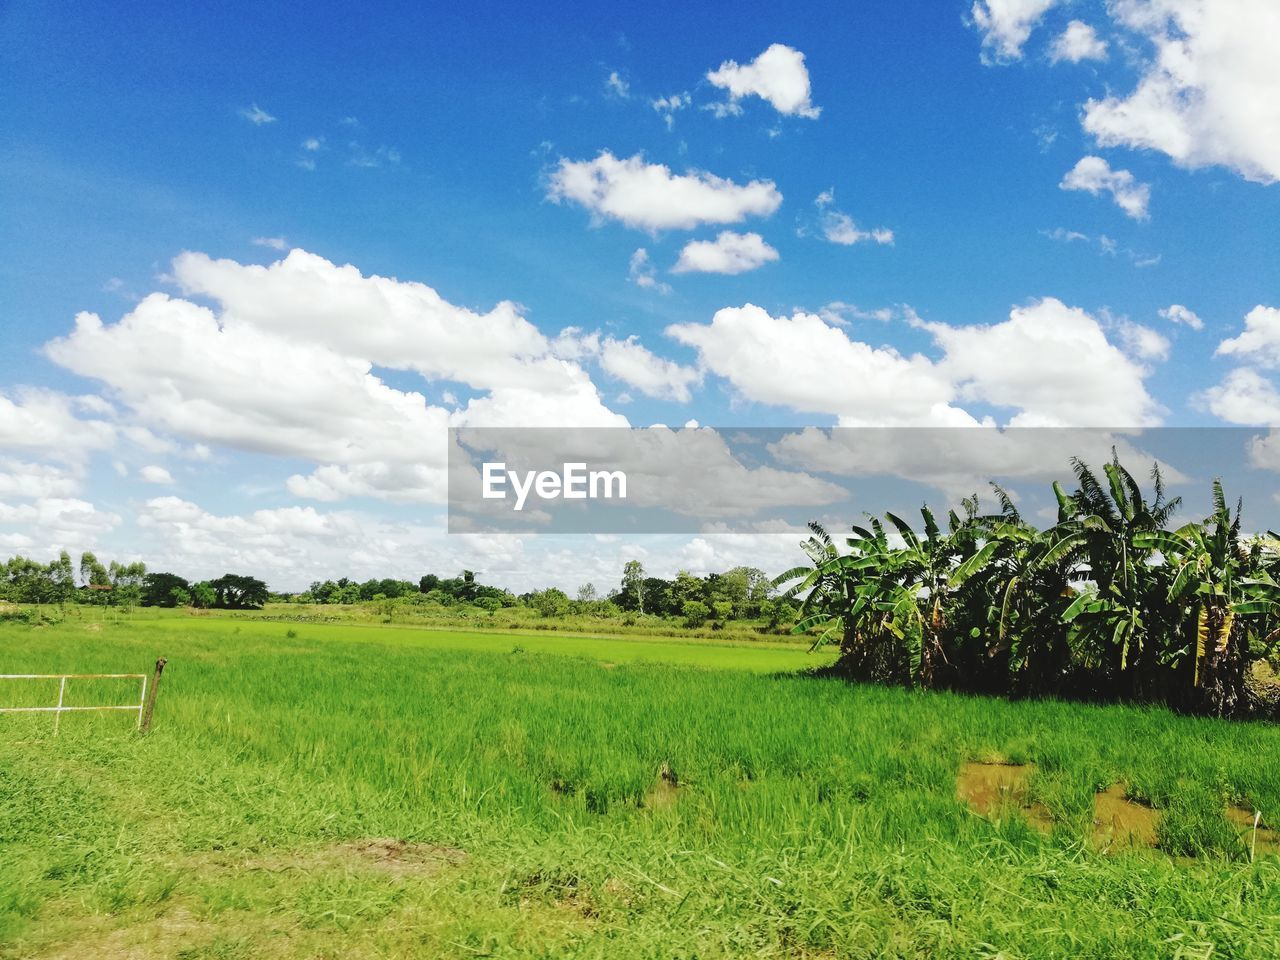 sky, plant, landscape, land, field, environment, cloud - sky, tranquility, tranquil scene, beauty in nature, scenics - nature, grass, green color, growth, agriculture, nature, tree, day, rural scene, no people, outdoors